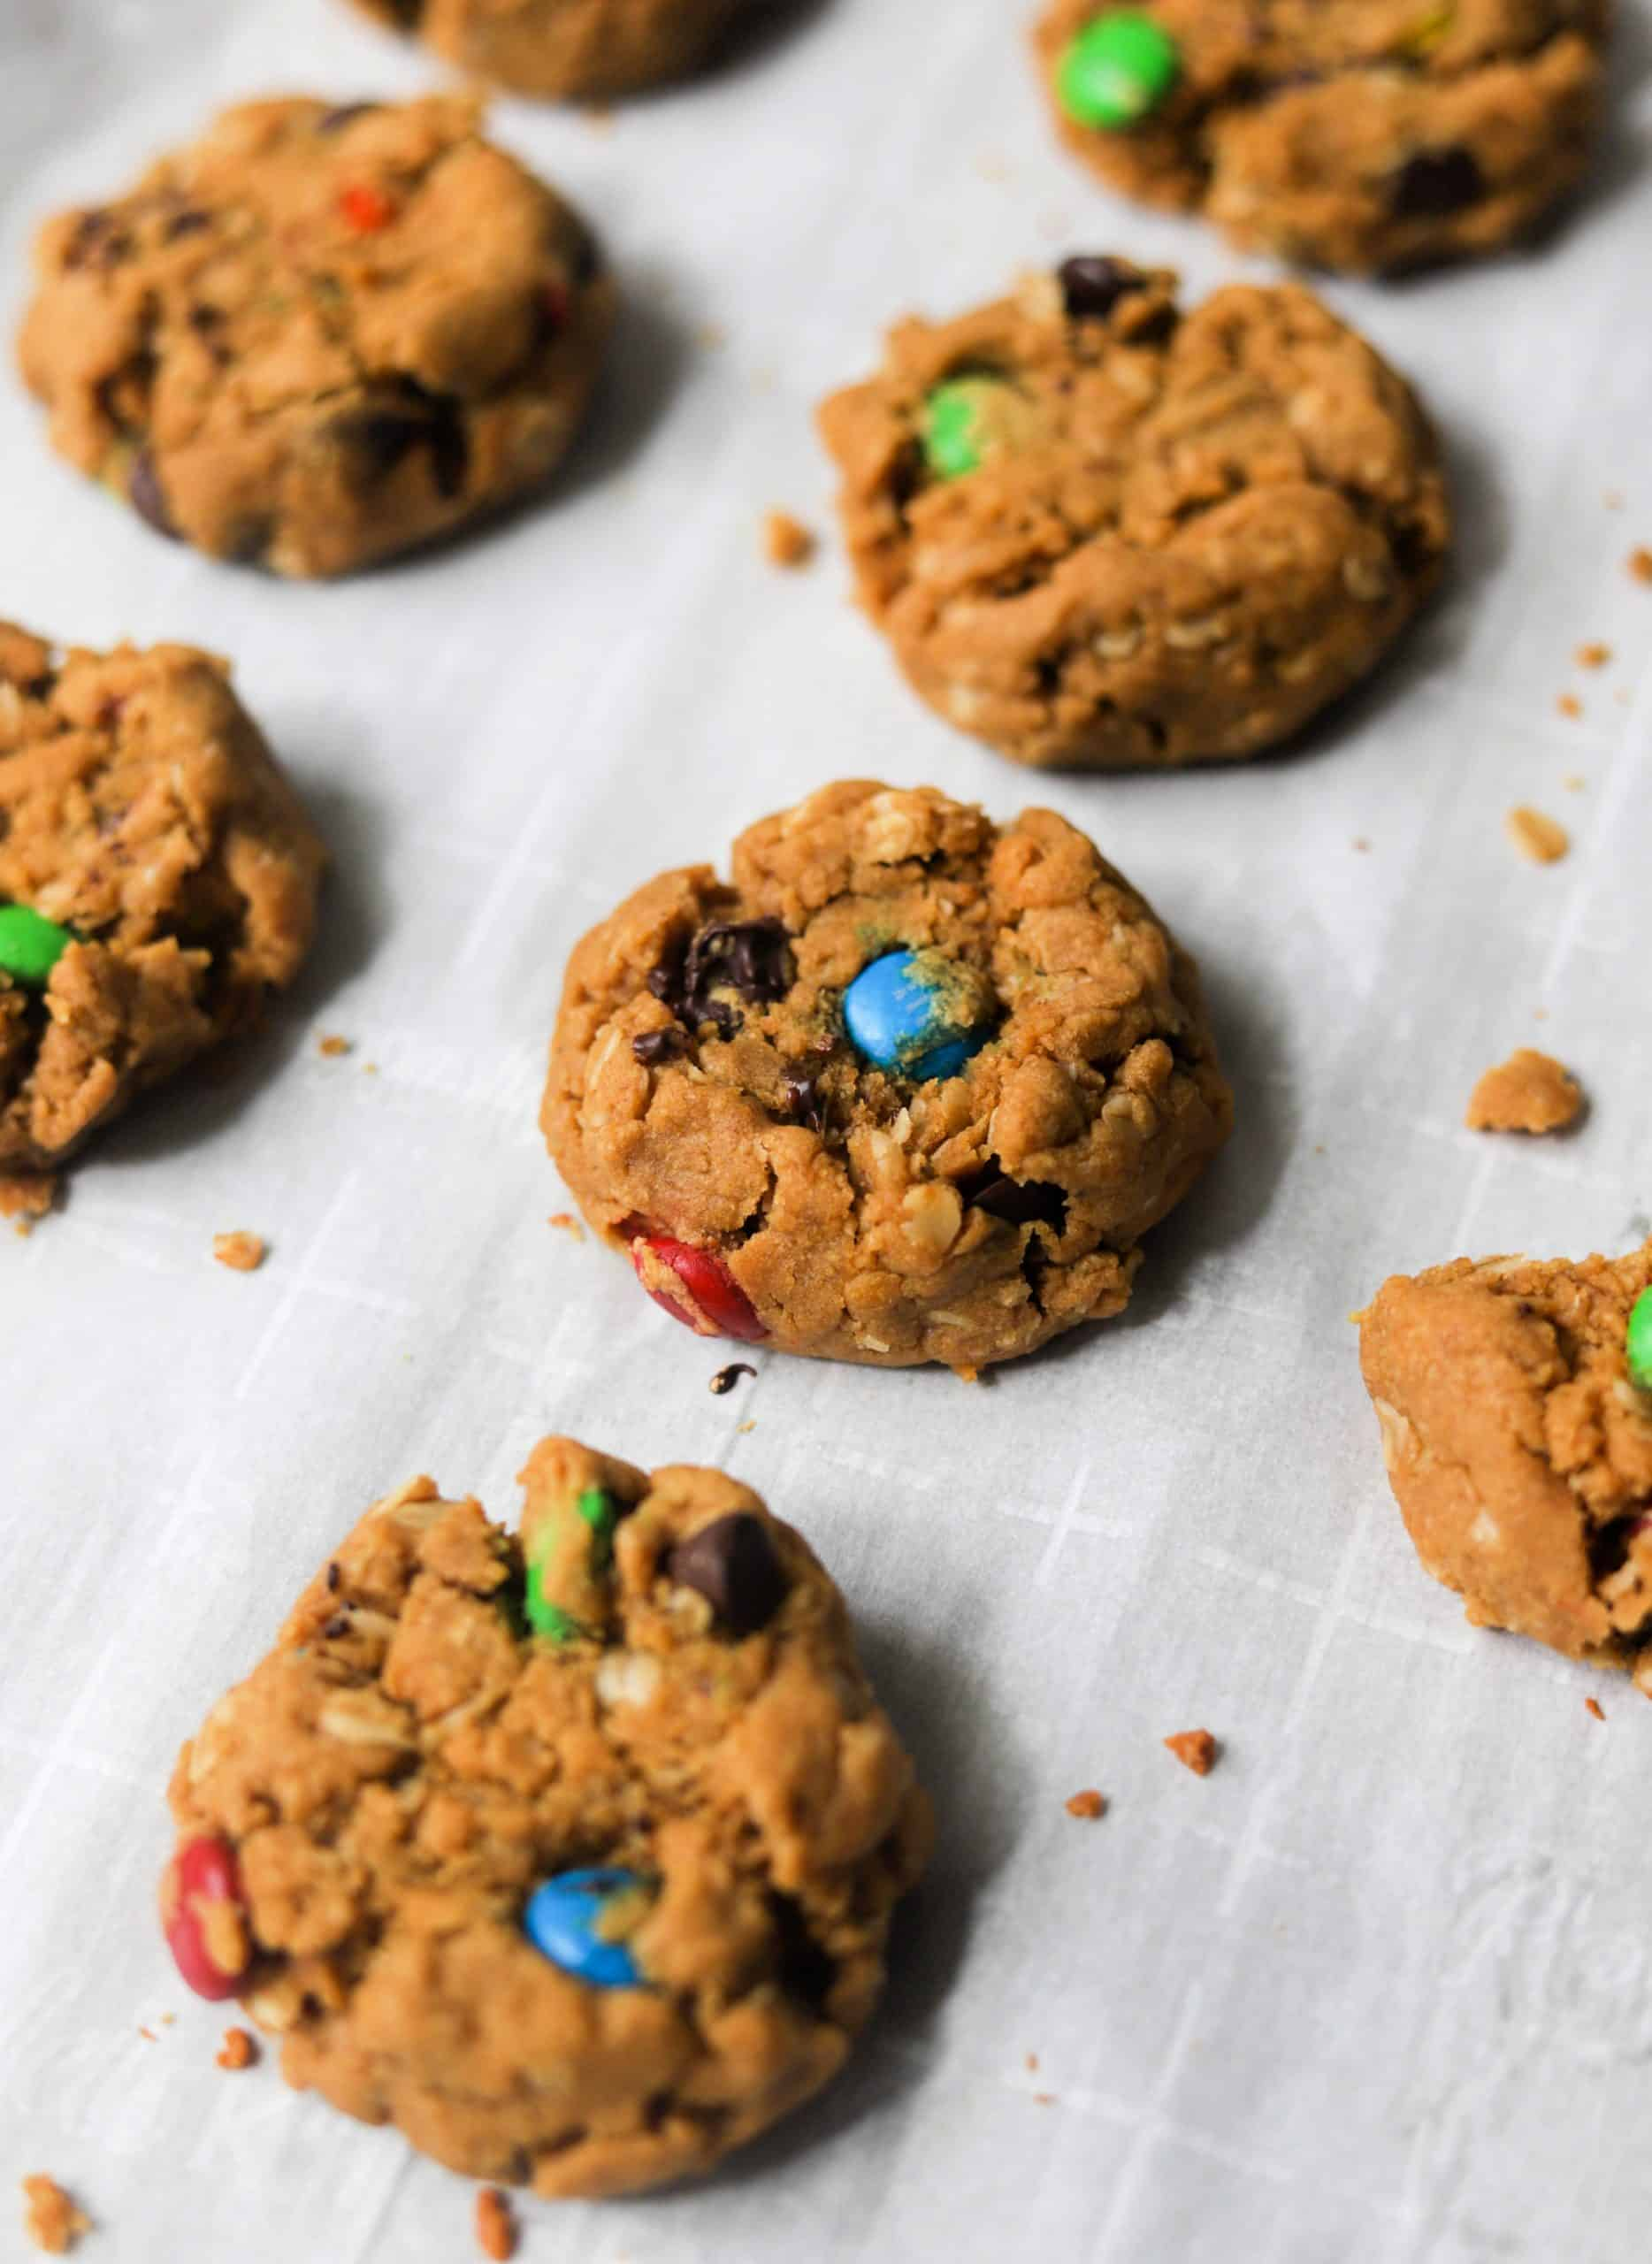 Healthier monster cookies on parchment paper.